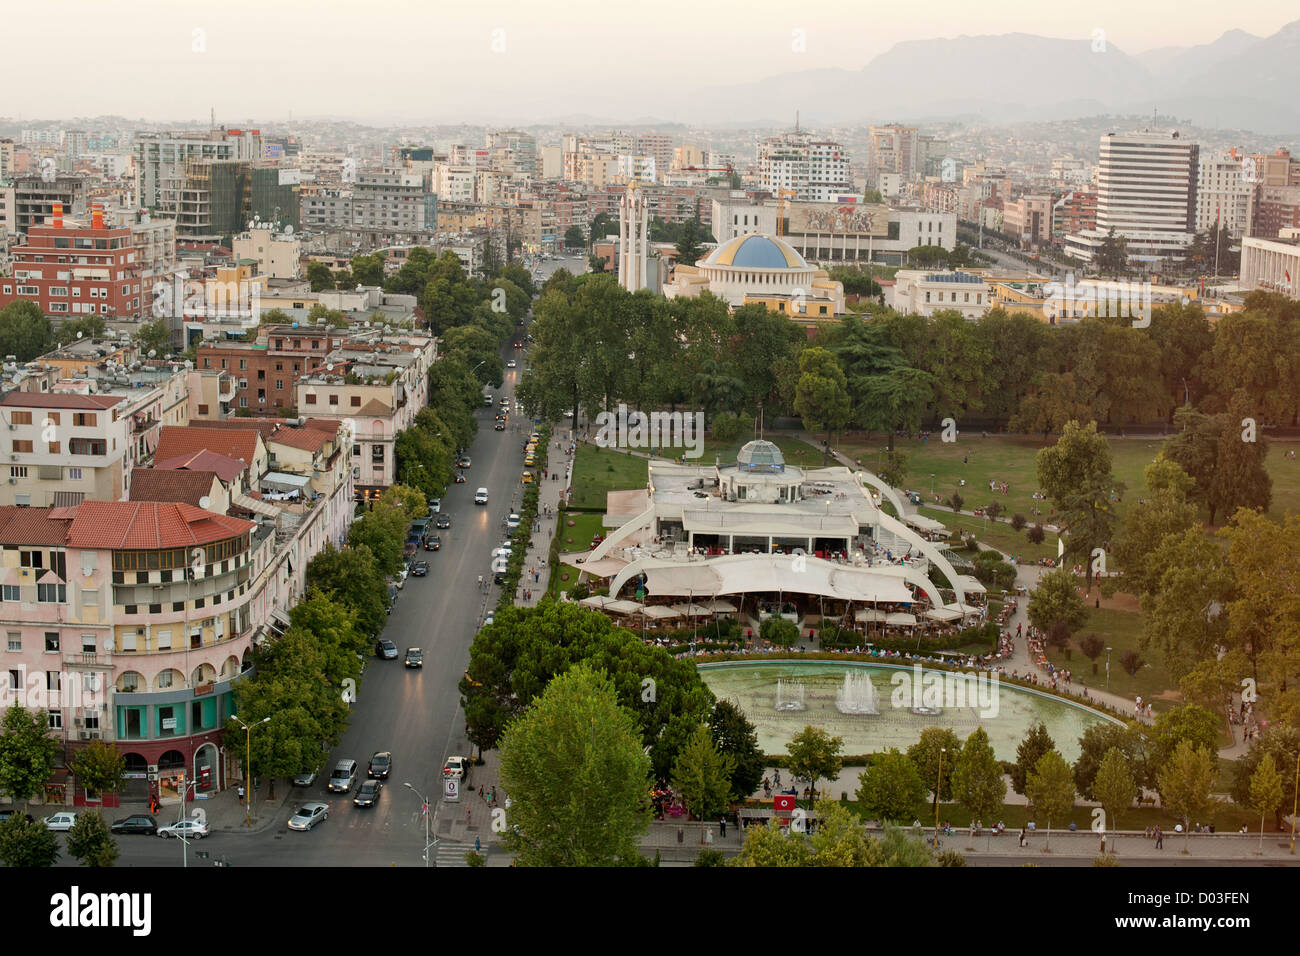 View across the city of Tirana, the capital of Albania. In the foreground is Rinia Park. - Stock Image